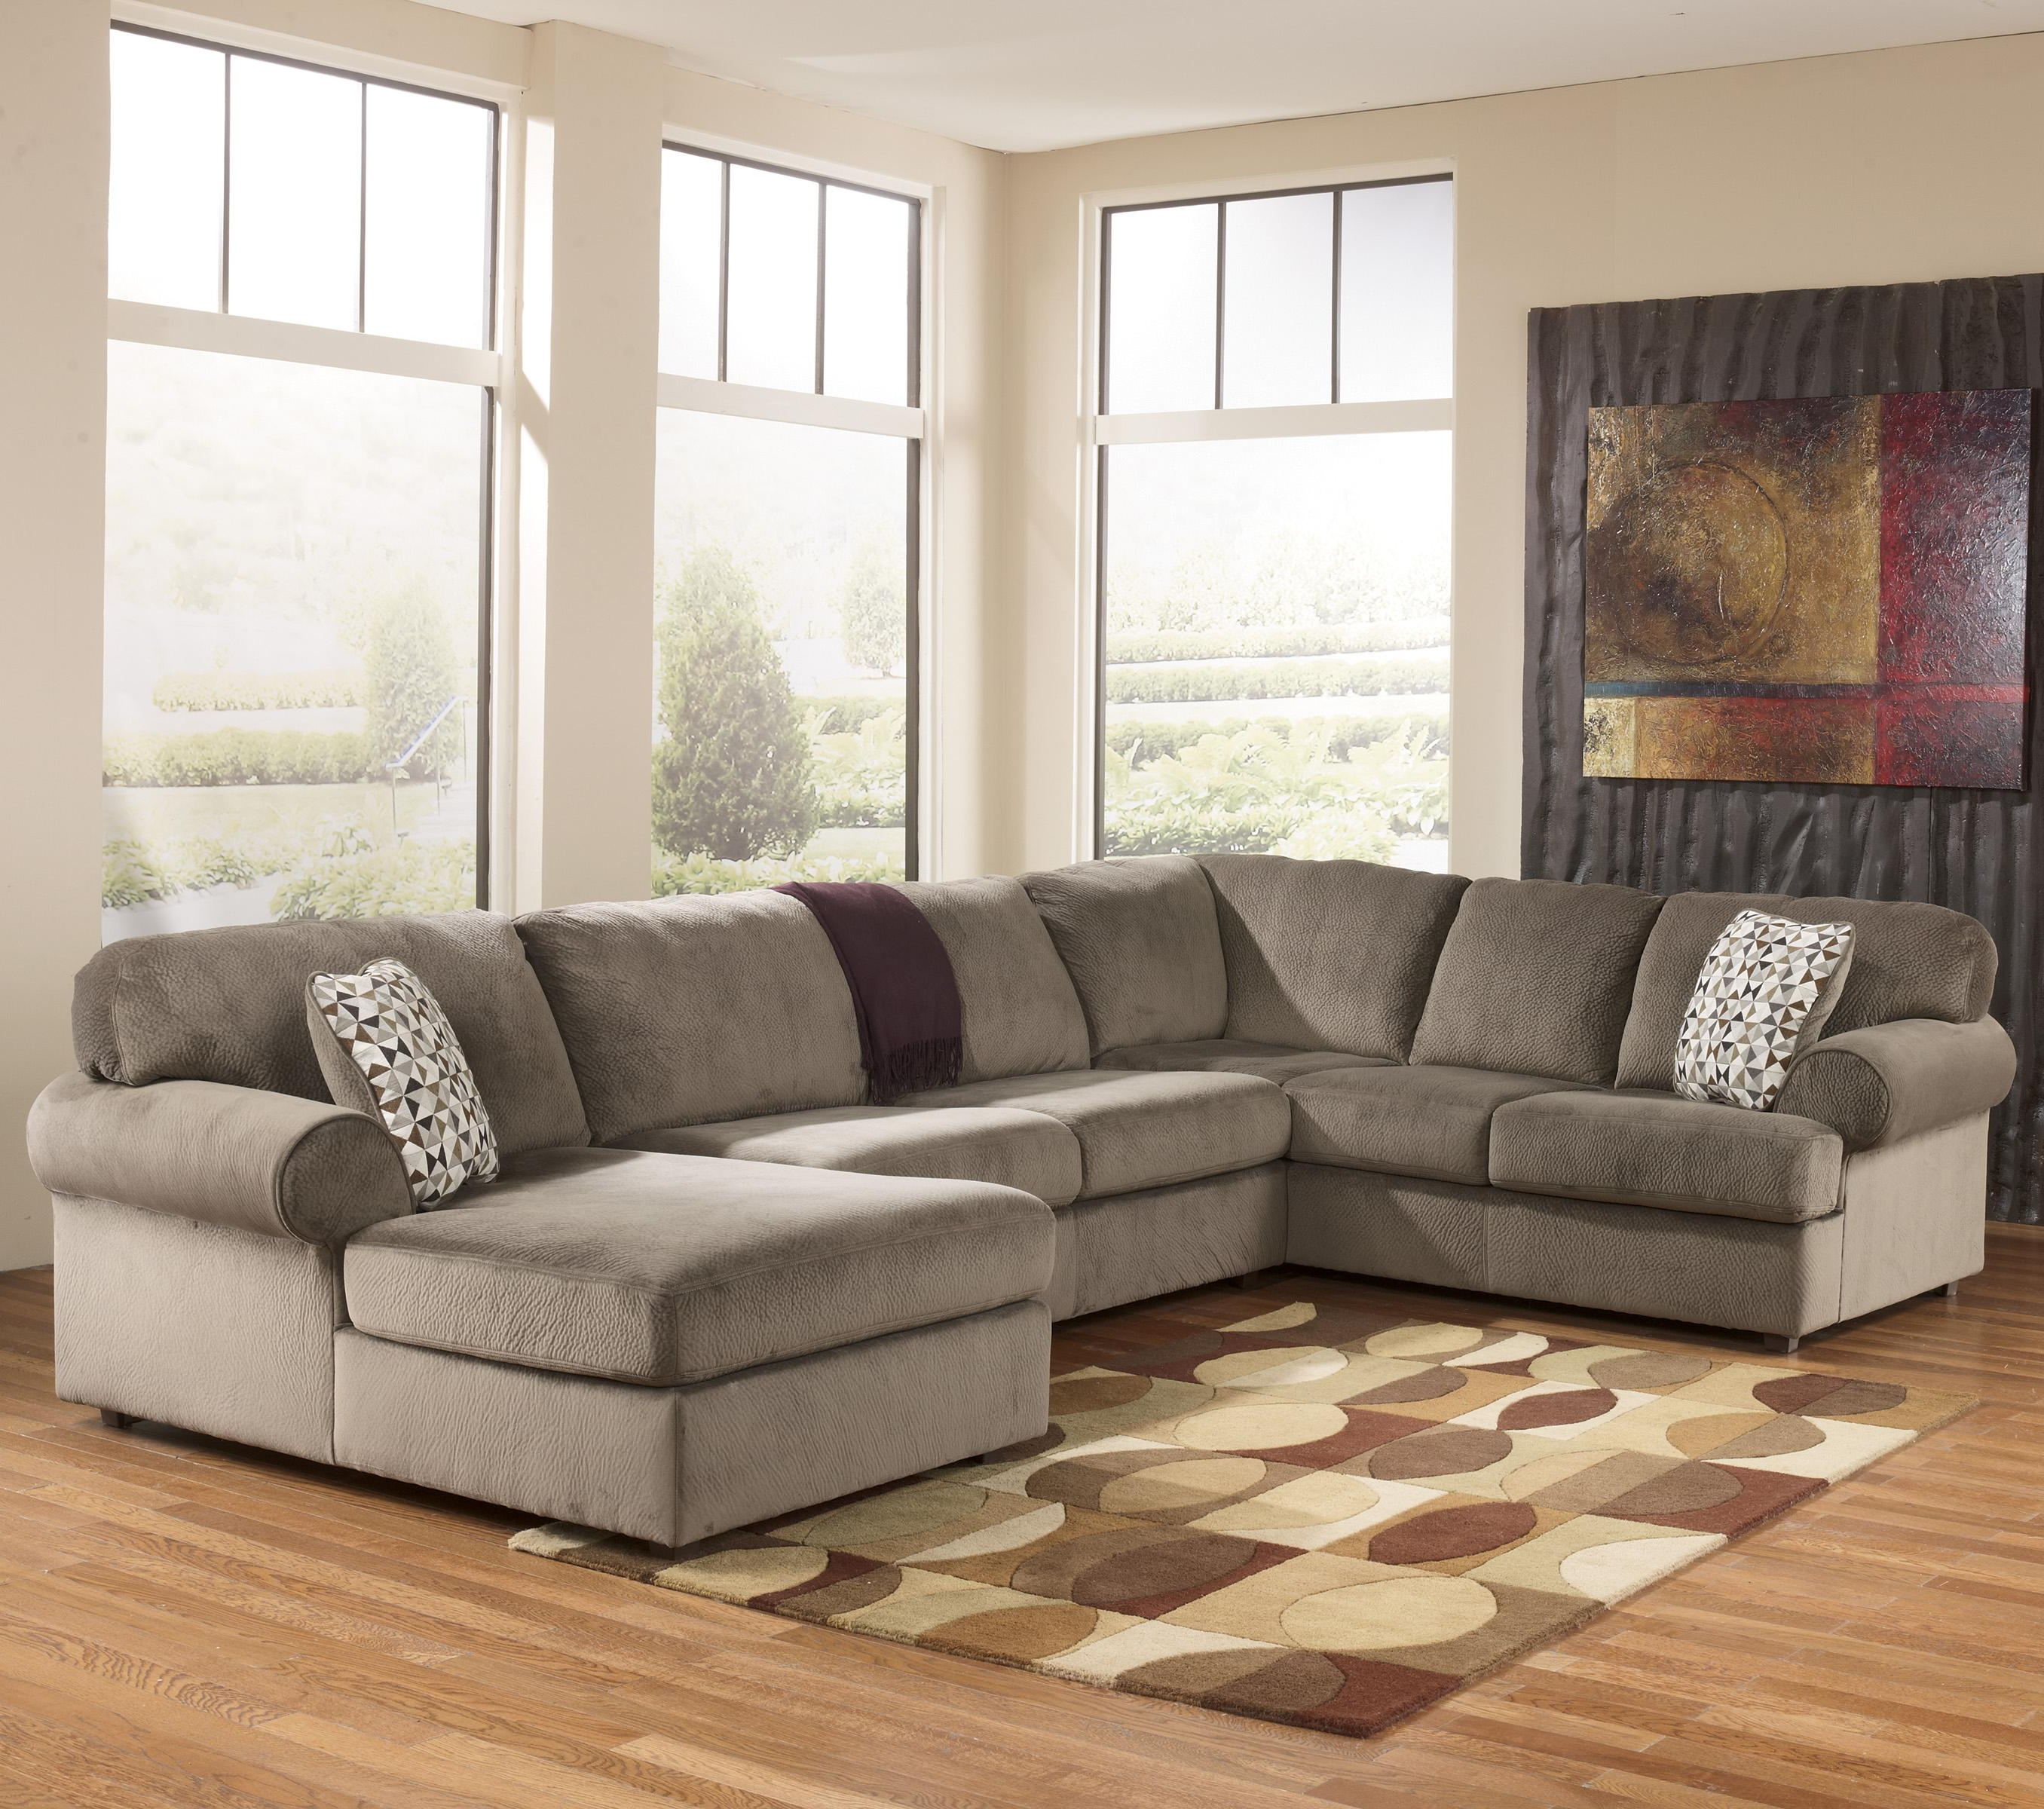 Lucy Grey 2 Piece Sectionals With Laf Chaise Throughout Best And Newest Laf Chaise Sectional Sofa (Gallery 18 of 20)